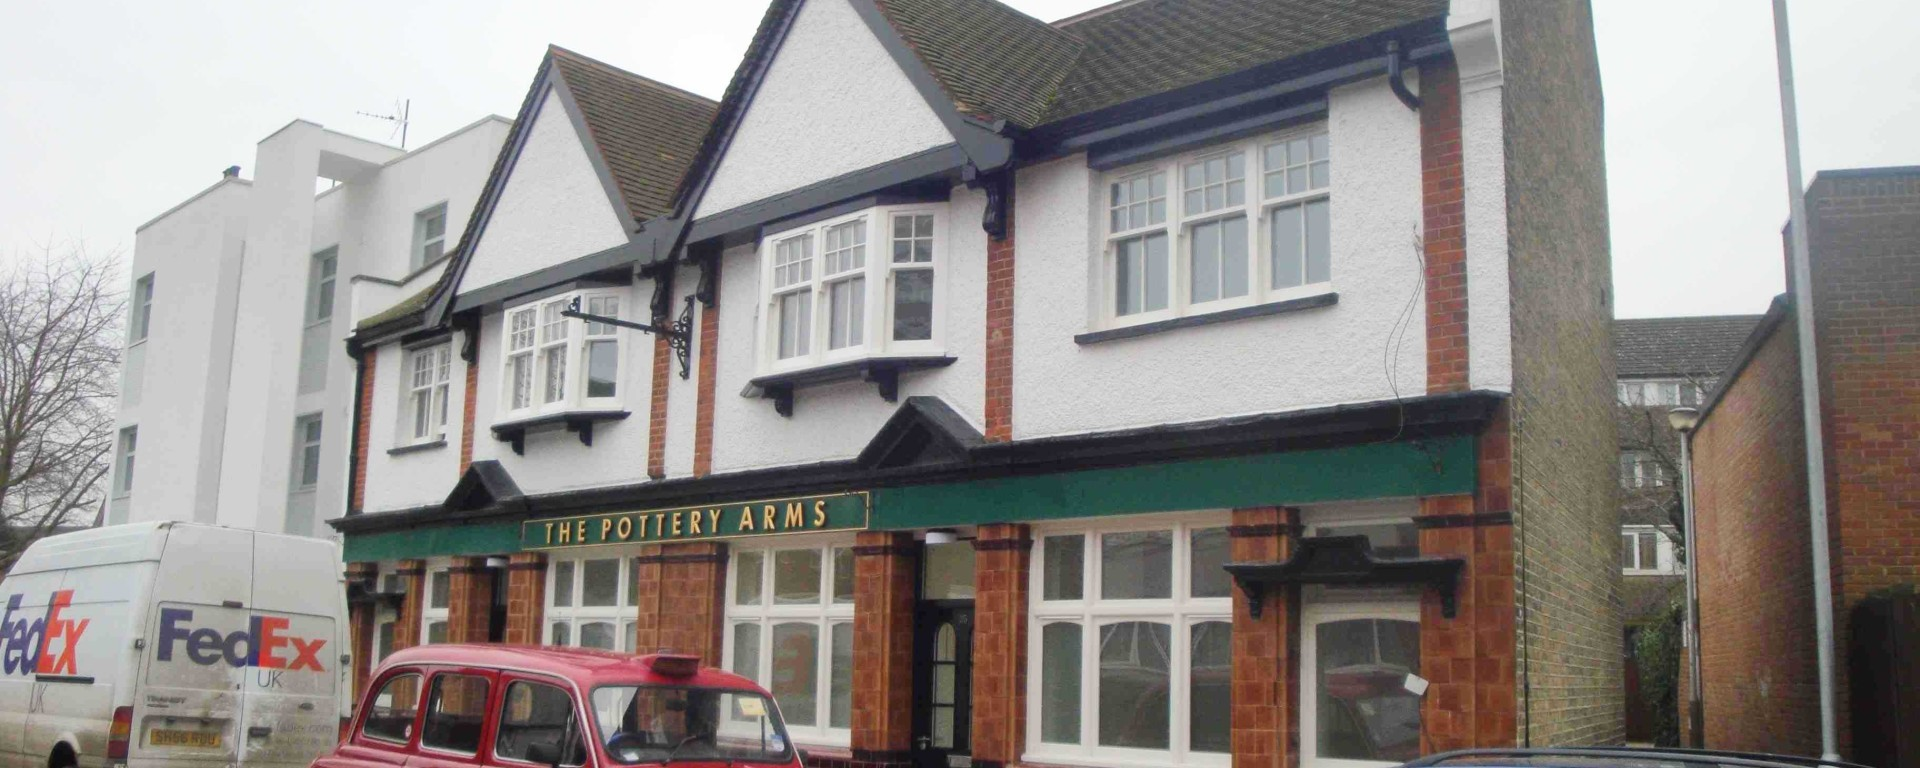 The Pottery Arms